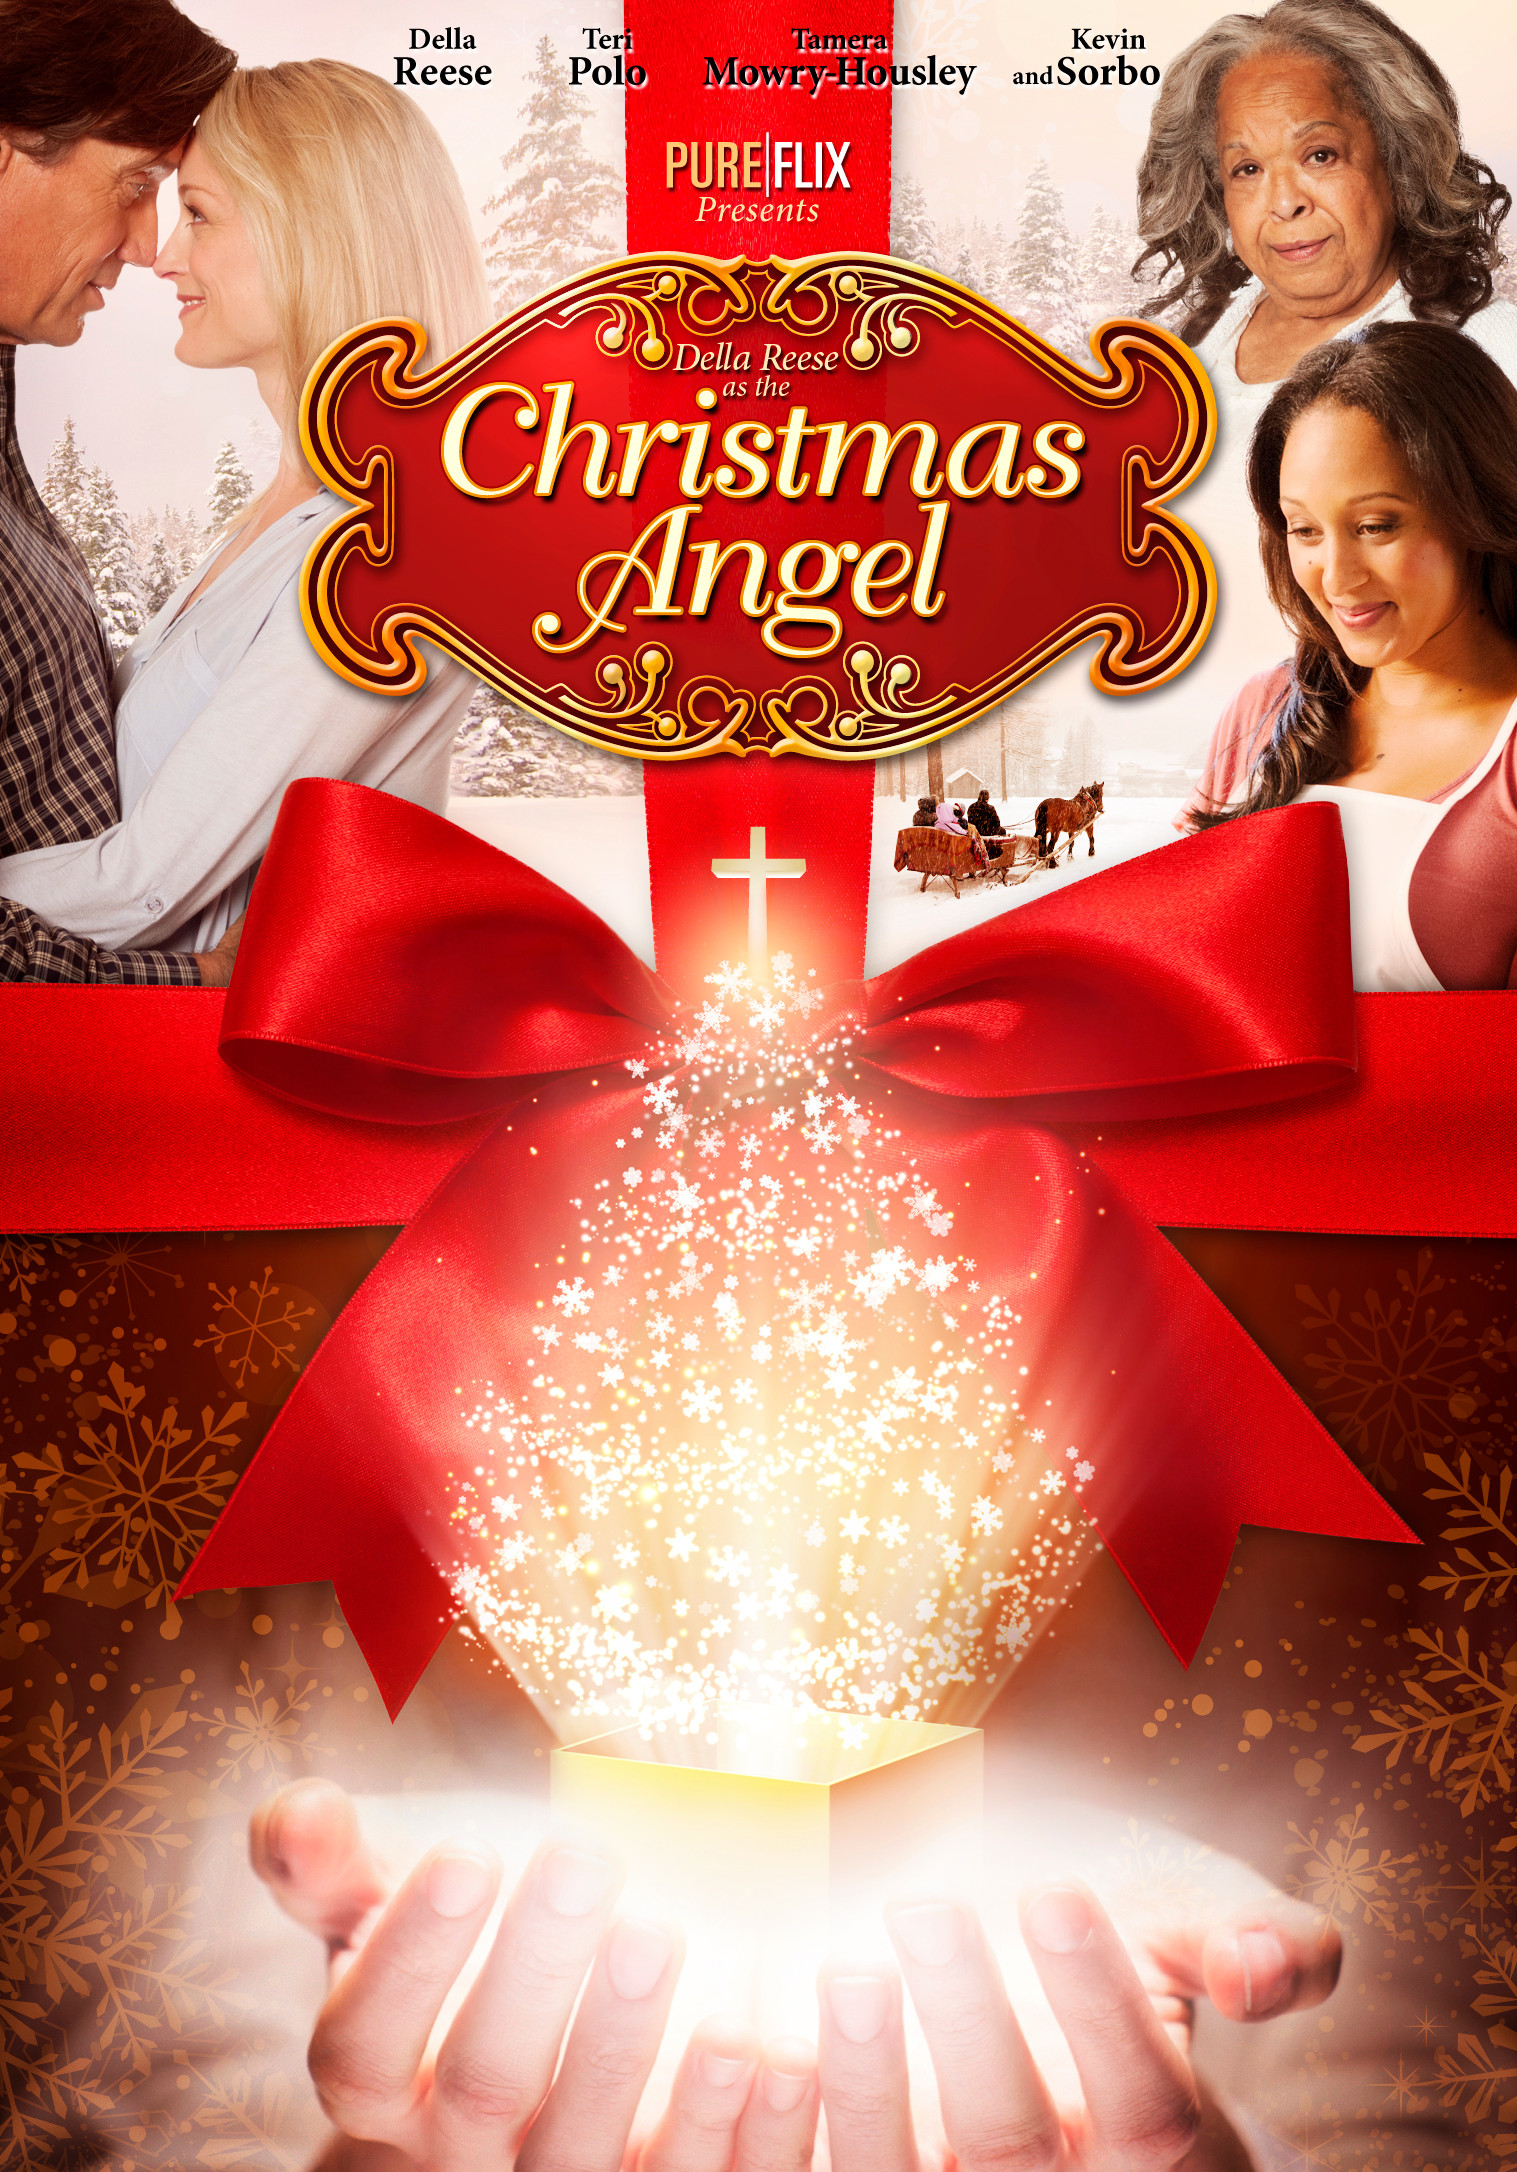 Christmas-Angel-Christian-MovieFilm-DVD-Blu-ray-Pure-Flix-Entertainment-Kevin-Sorbo1.jpg